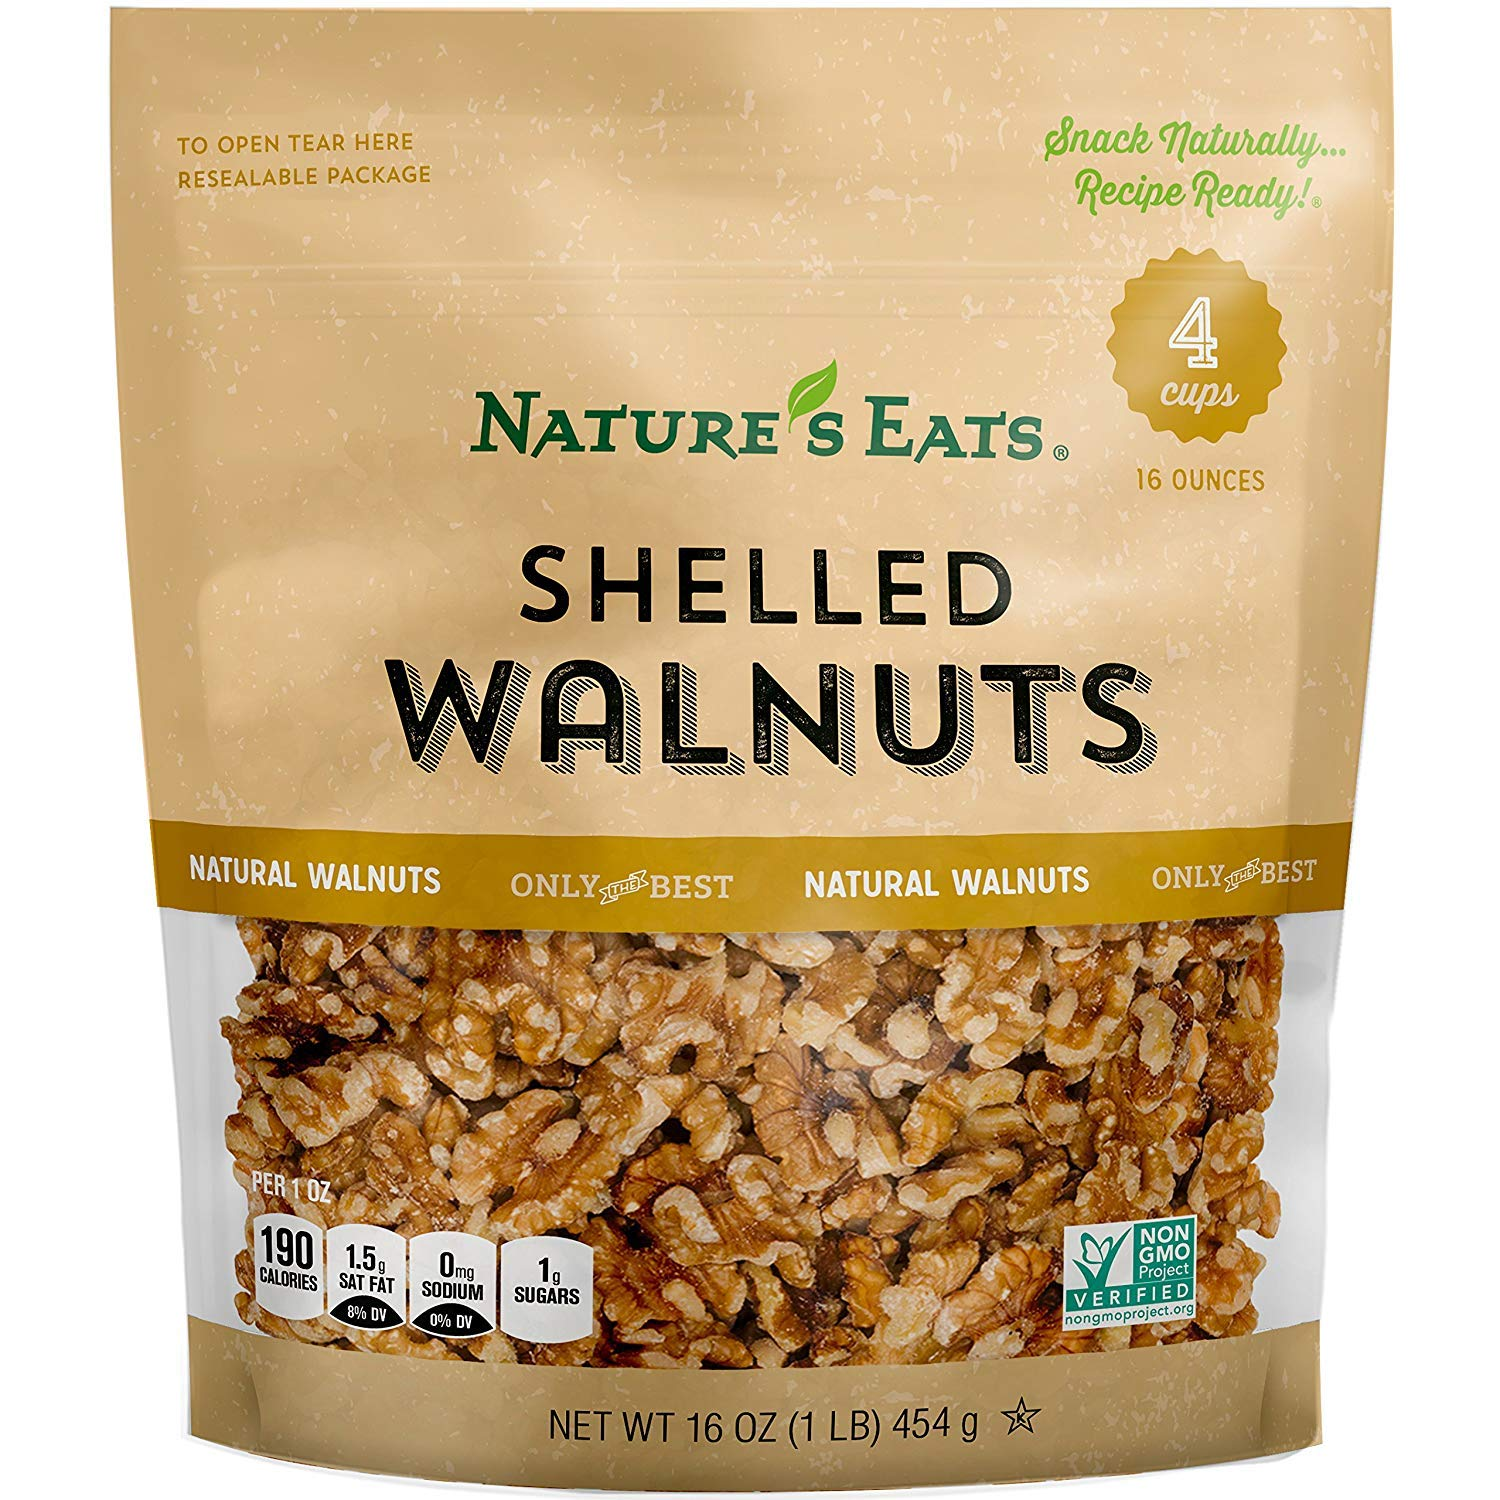 Nature's Eats Walnuts 16 Memphis Mall oz Pack Sale special price Ounce 2